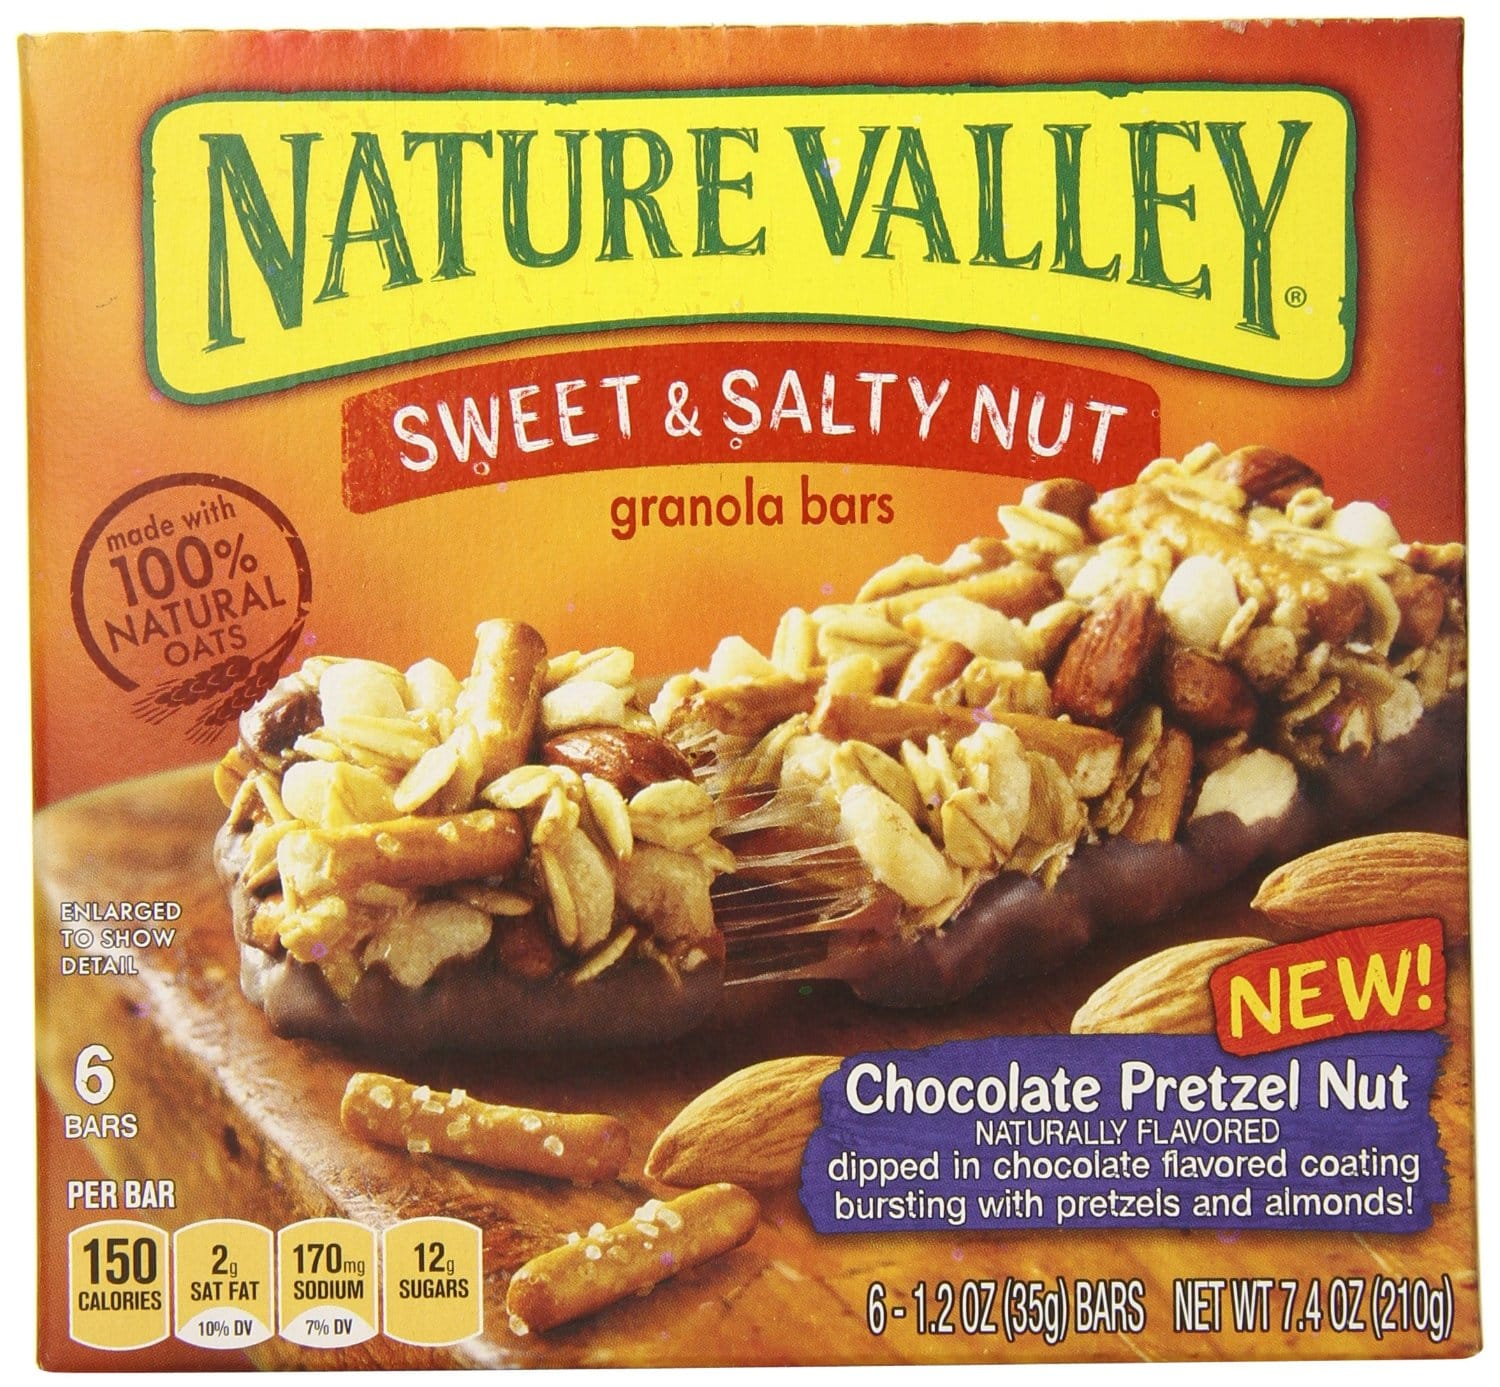 6-Ct of 1.2oz Nature Valley Sweet & Salty Chocolate Pretzel Nut Granola Bars  $2 + Free Shipping